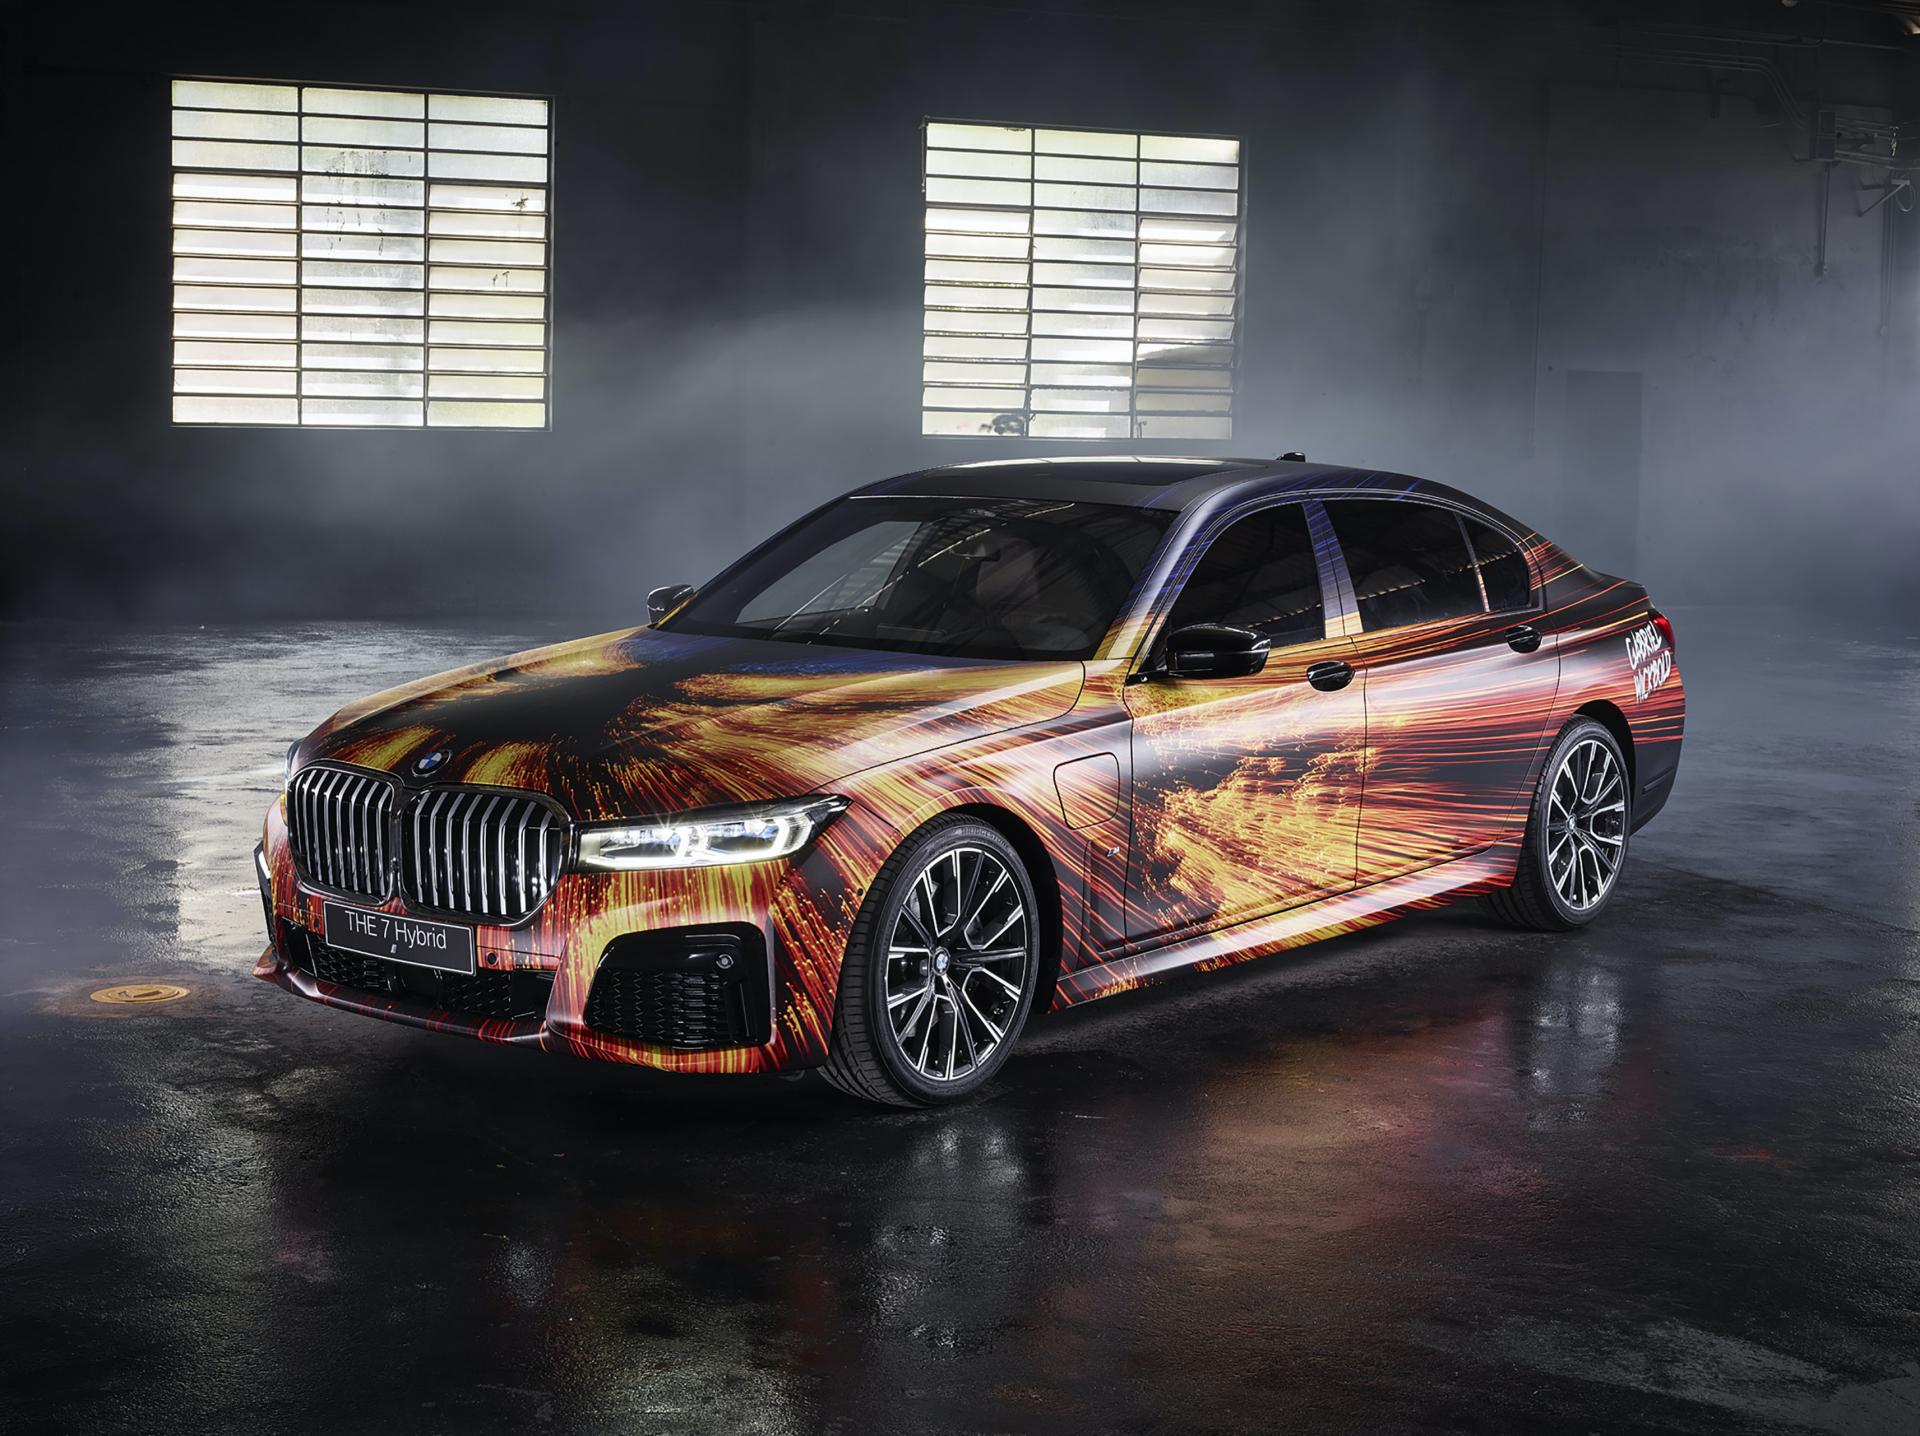 BMW-7-Series-745Le-M-Sport-Gabriel-Wickbold-Car-Art-11